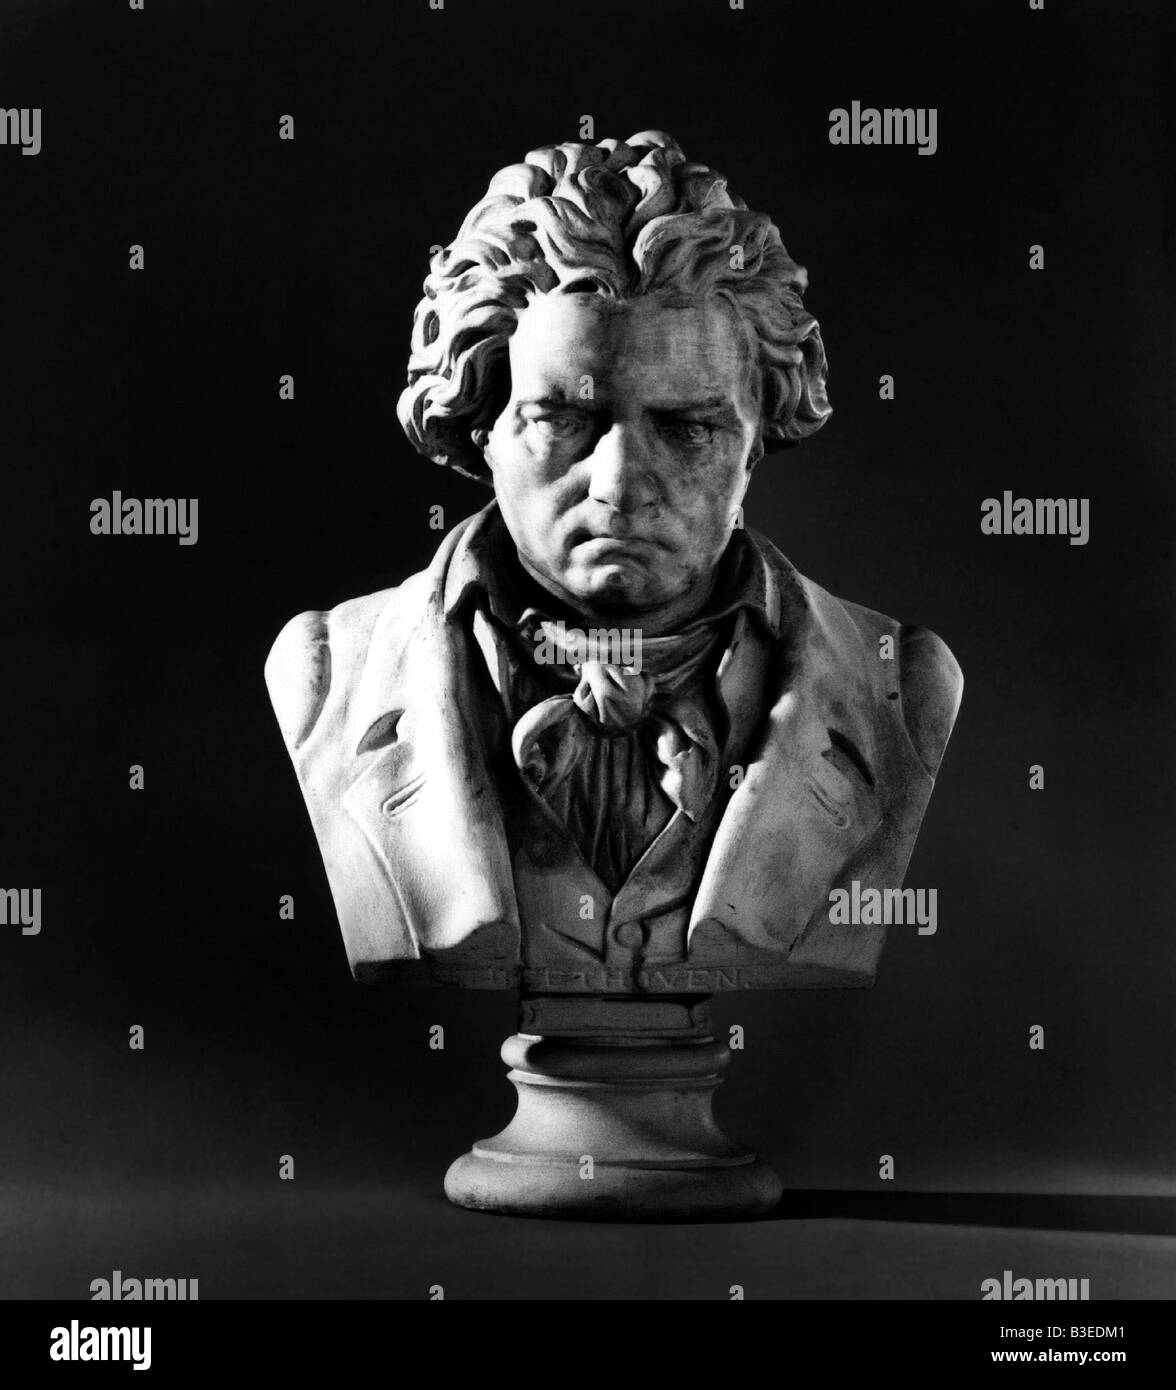 account of the rise of ludwig van beethoven Don't only practice your art, but force your way into its secrets, for it and knowledge can raise men to the divine ― ludwig van beethoven.